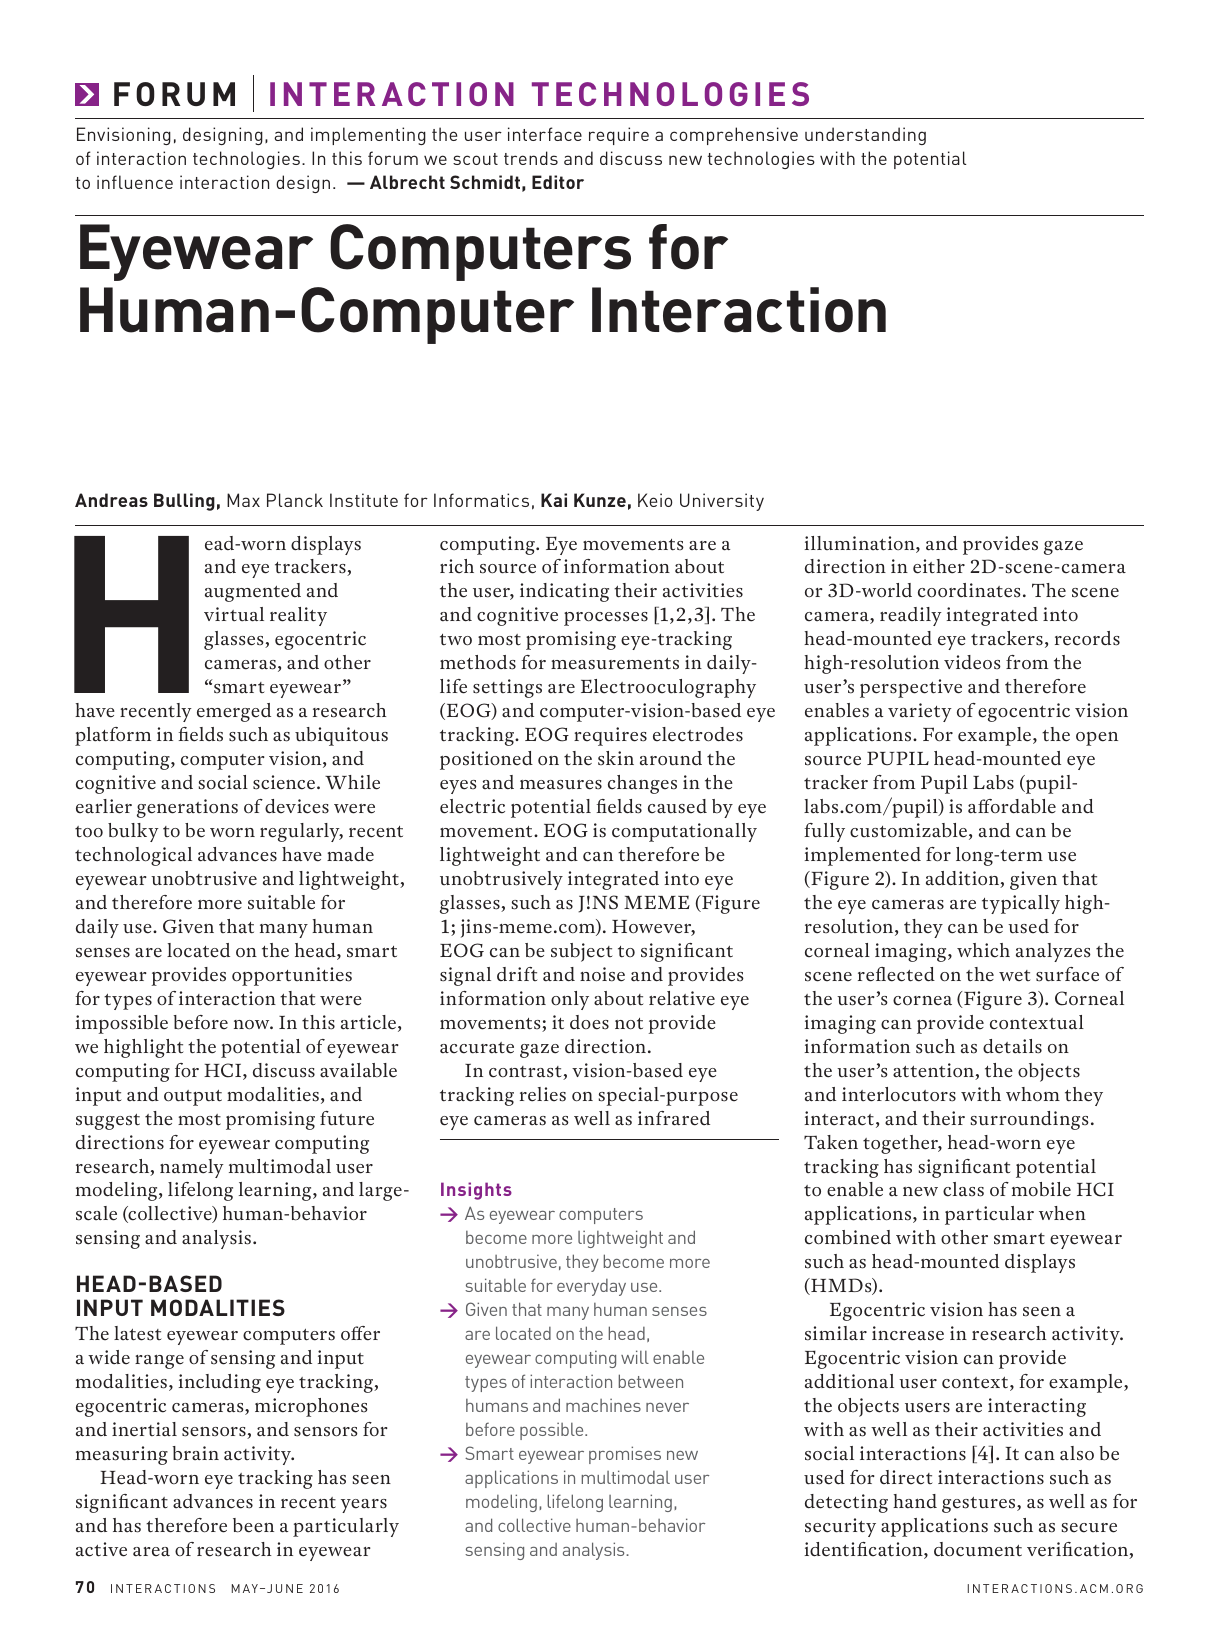 EyeWear Computers for Human-Computer Interaction